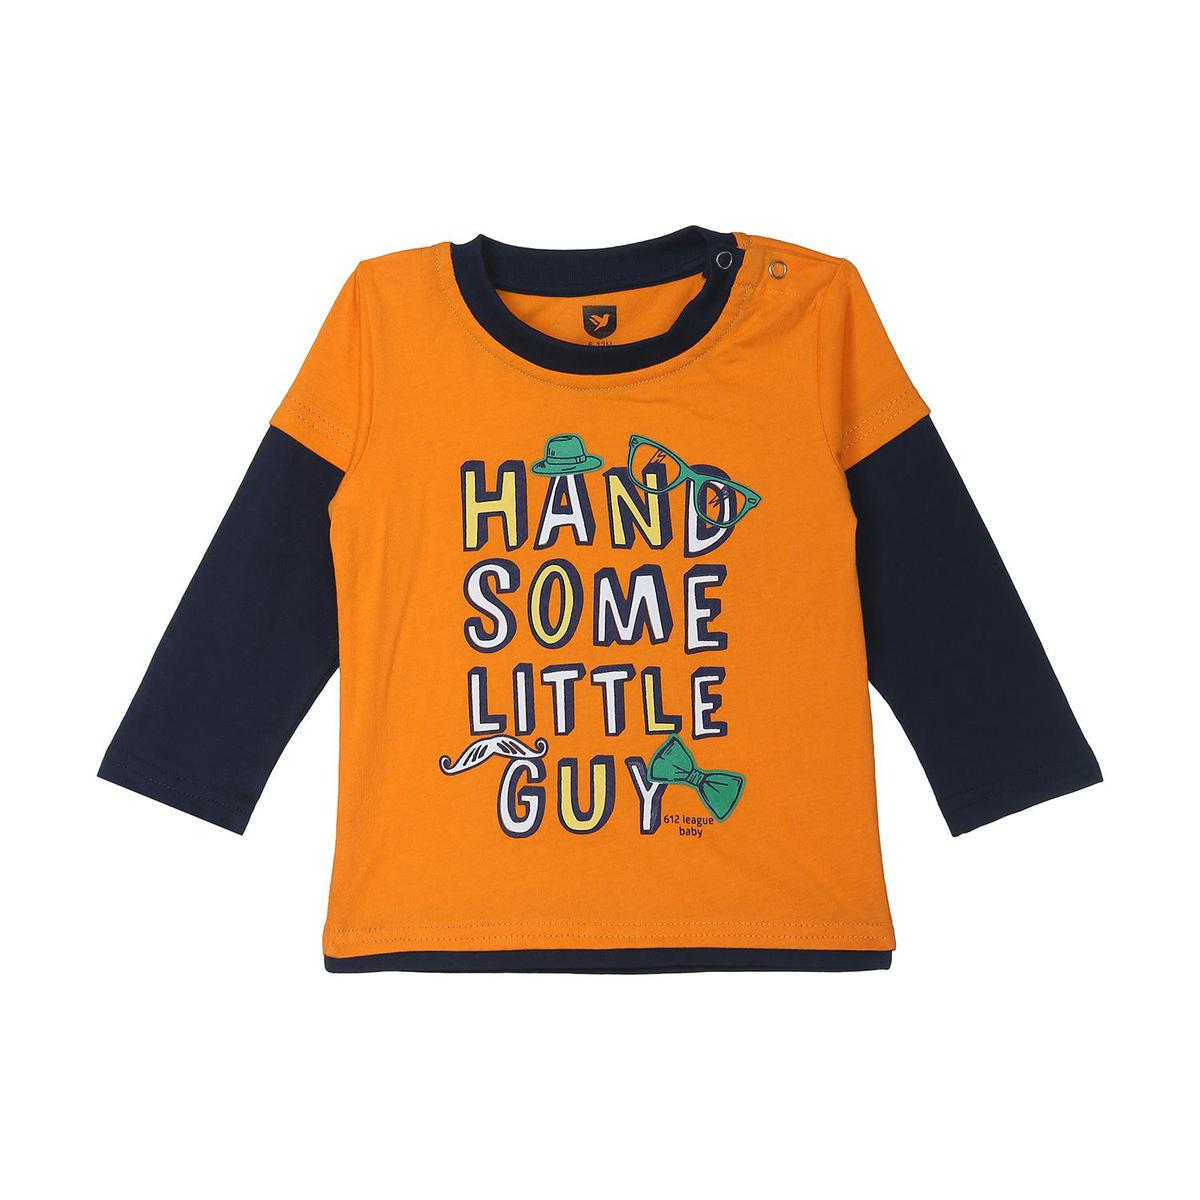 612 League - Orange Colored R/N Handsome Knit Graphic Cotton T-shirt For Baby Boys